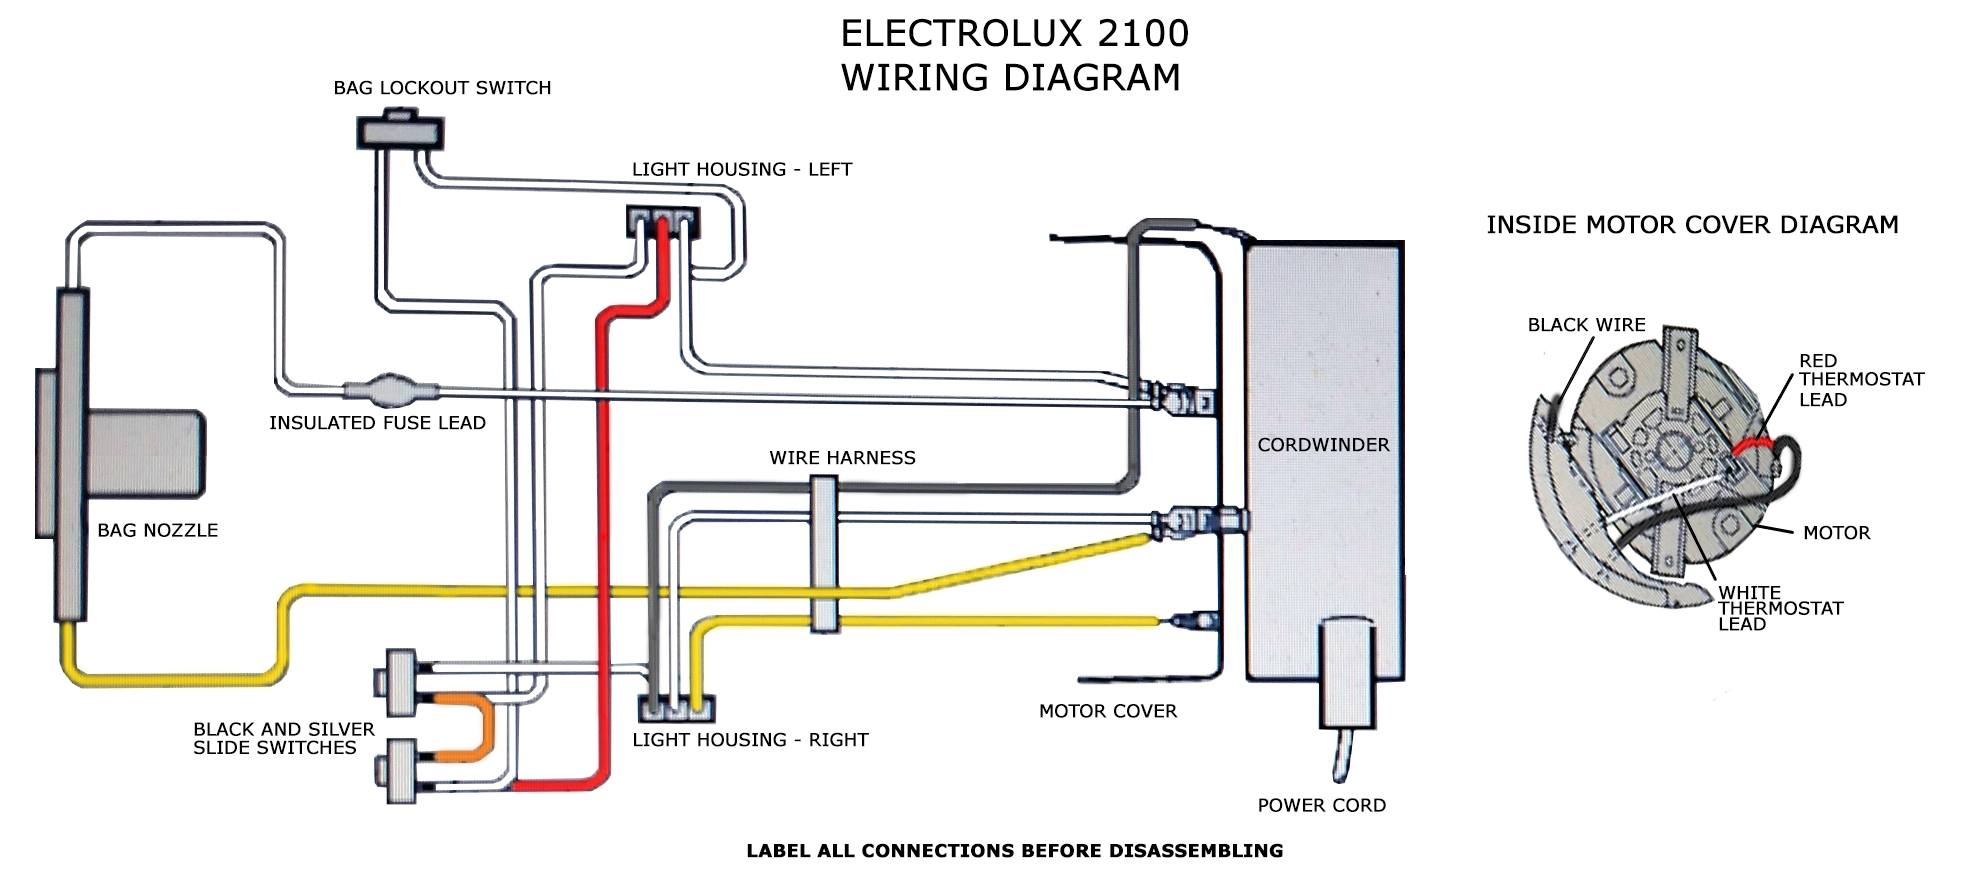 electrolux 2100 wiring diagram rh blog evacuumstore com henry vacuum cleaner wiring diagram henry vacuum cleaner wiring diagram